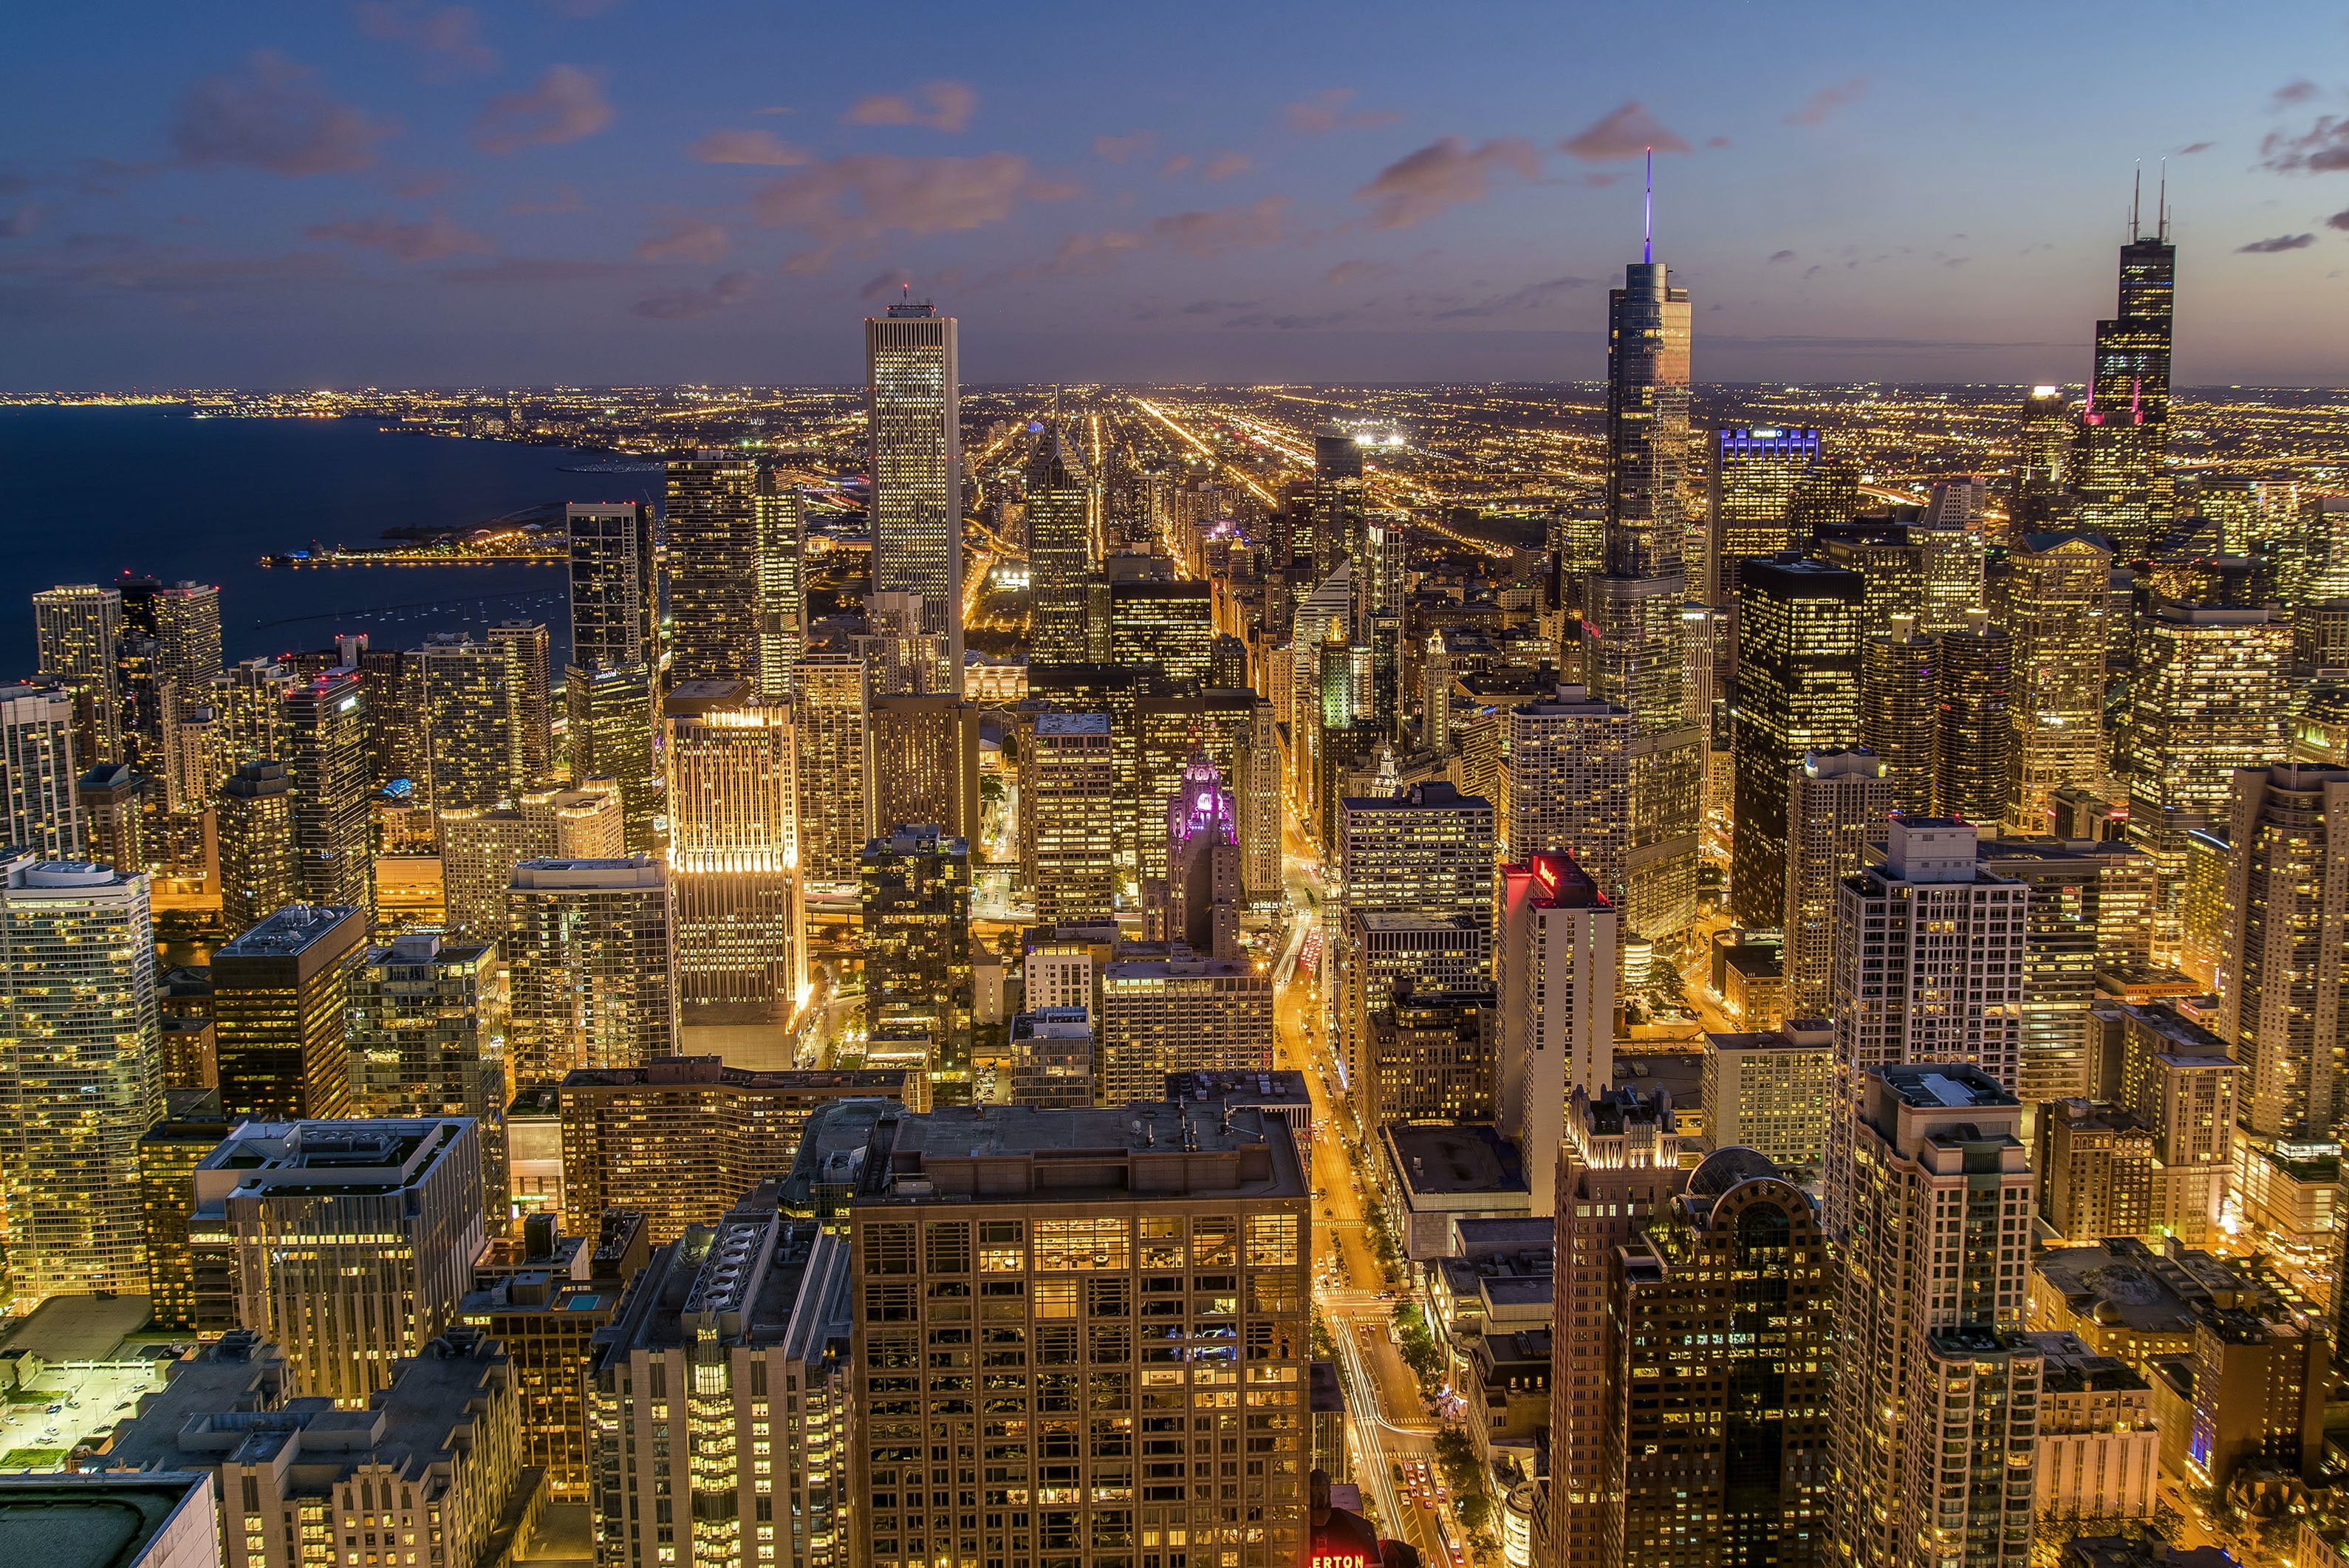 A cityscape of chicago with bright lights and neons on an evening